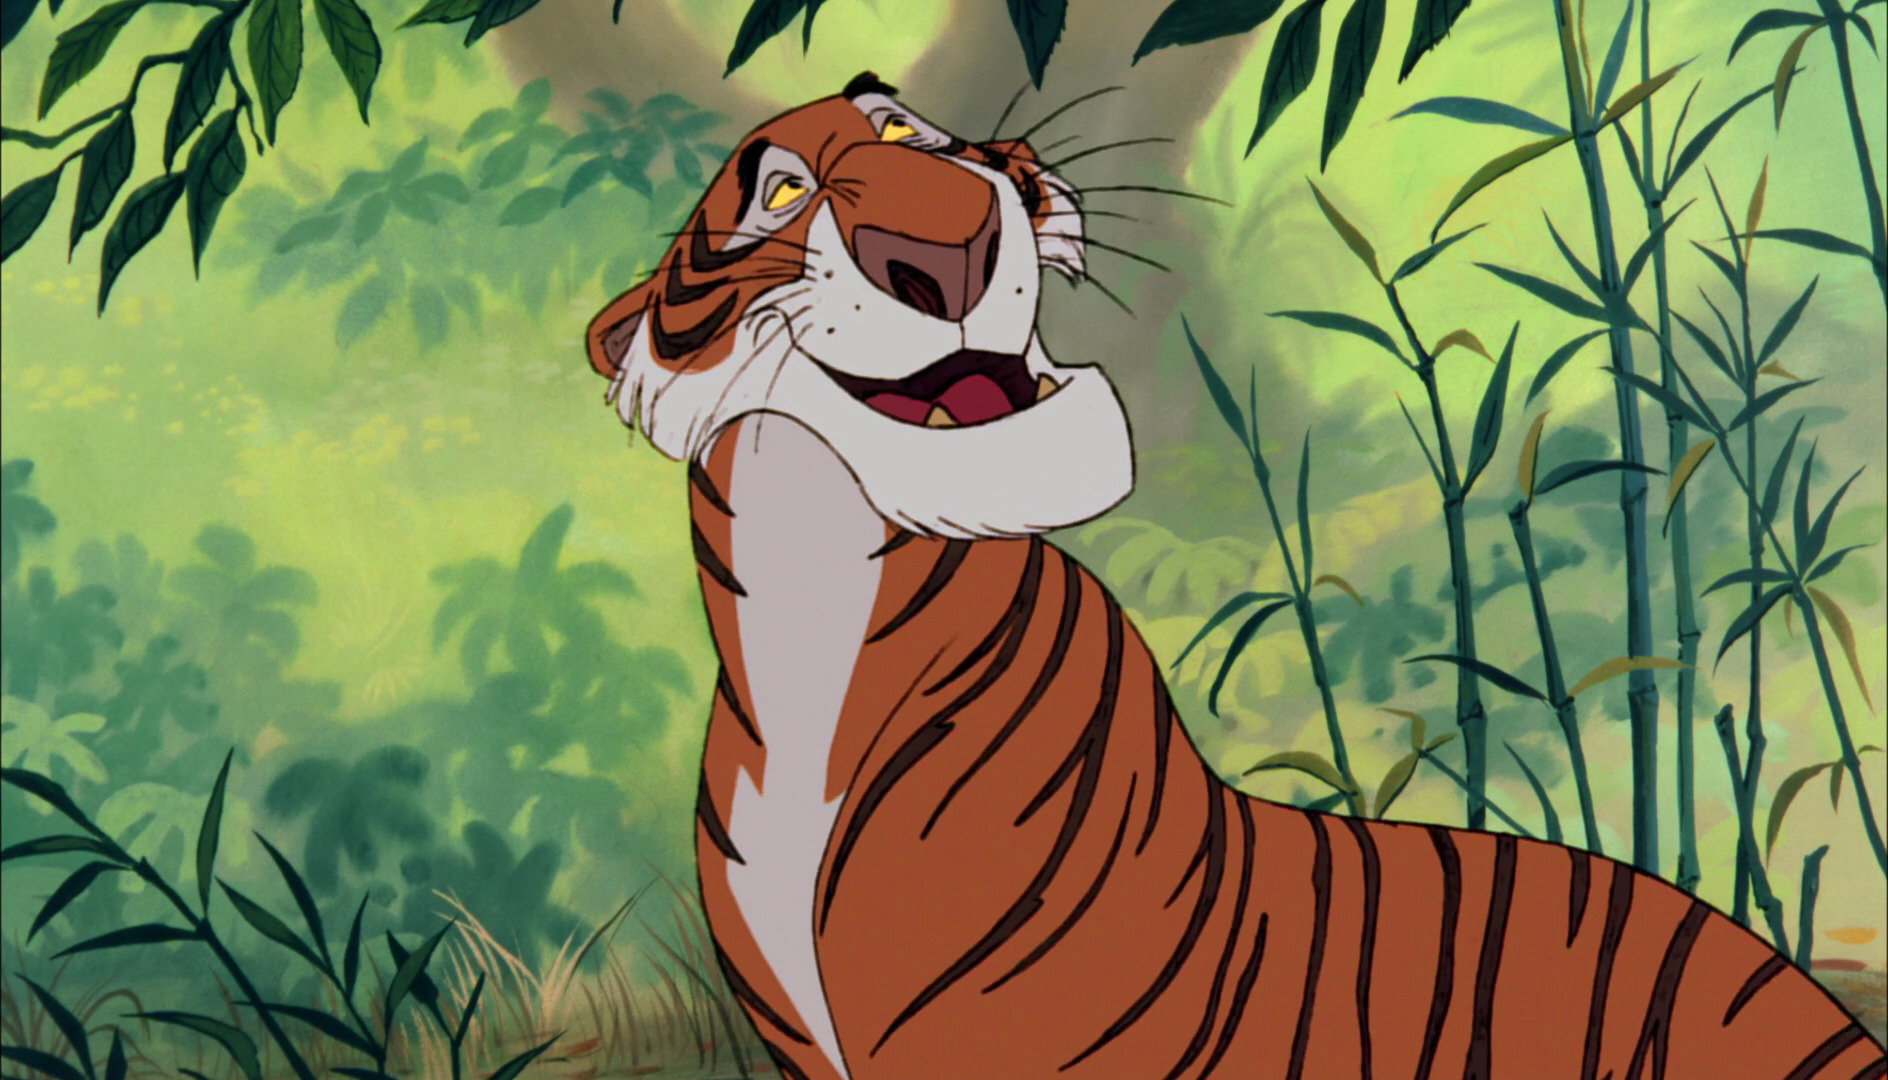 shere khan personnage livre jungle disney film